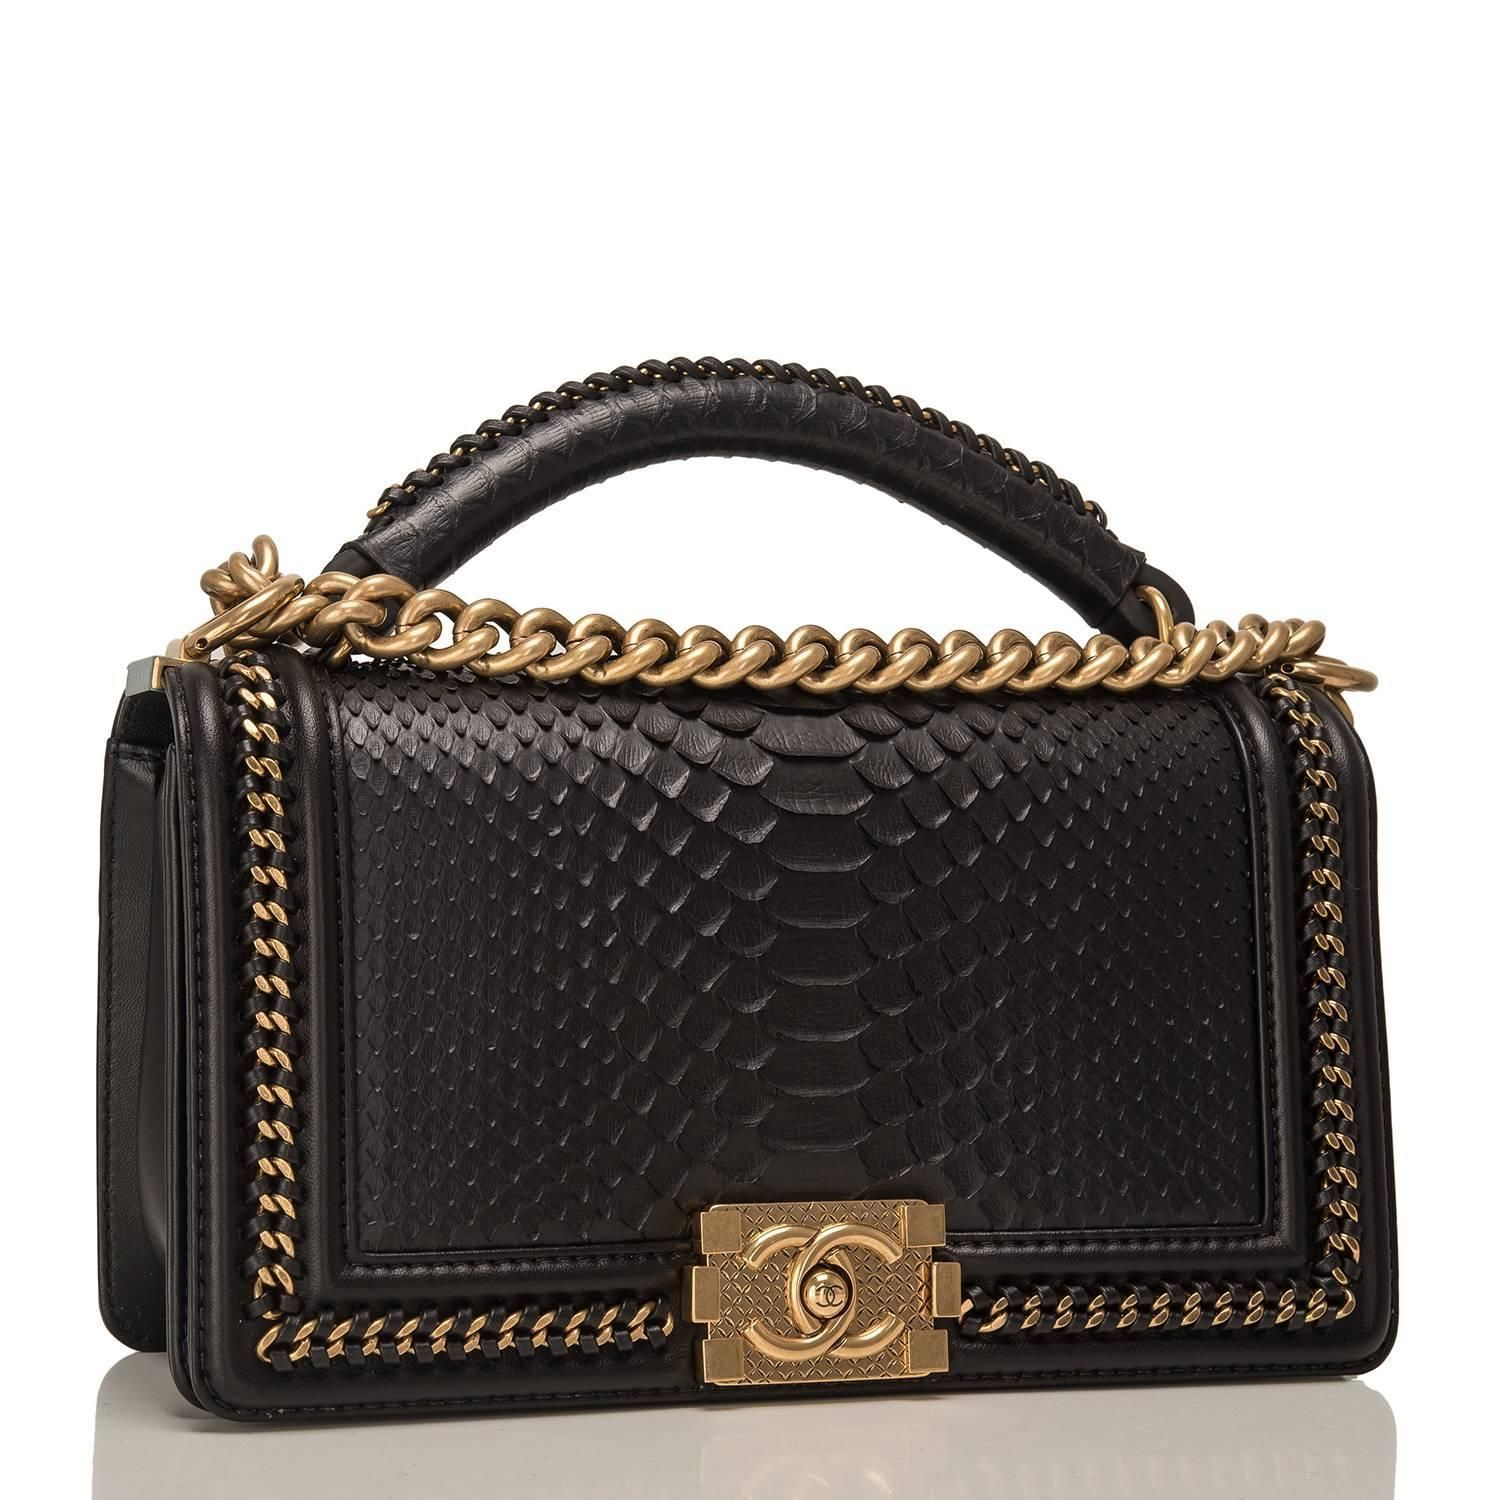 53c321410ffda7 Chanel Black Python Medium Boy Bag with Handle | Sac à main | Bags ...